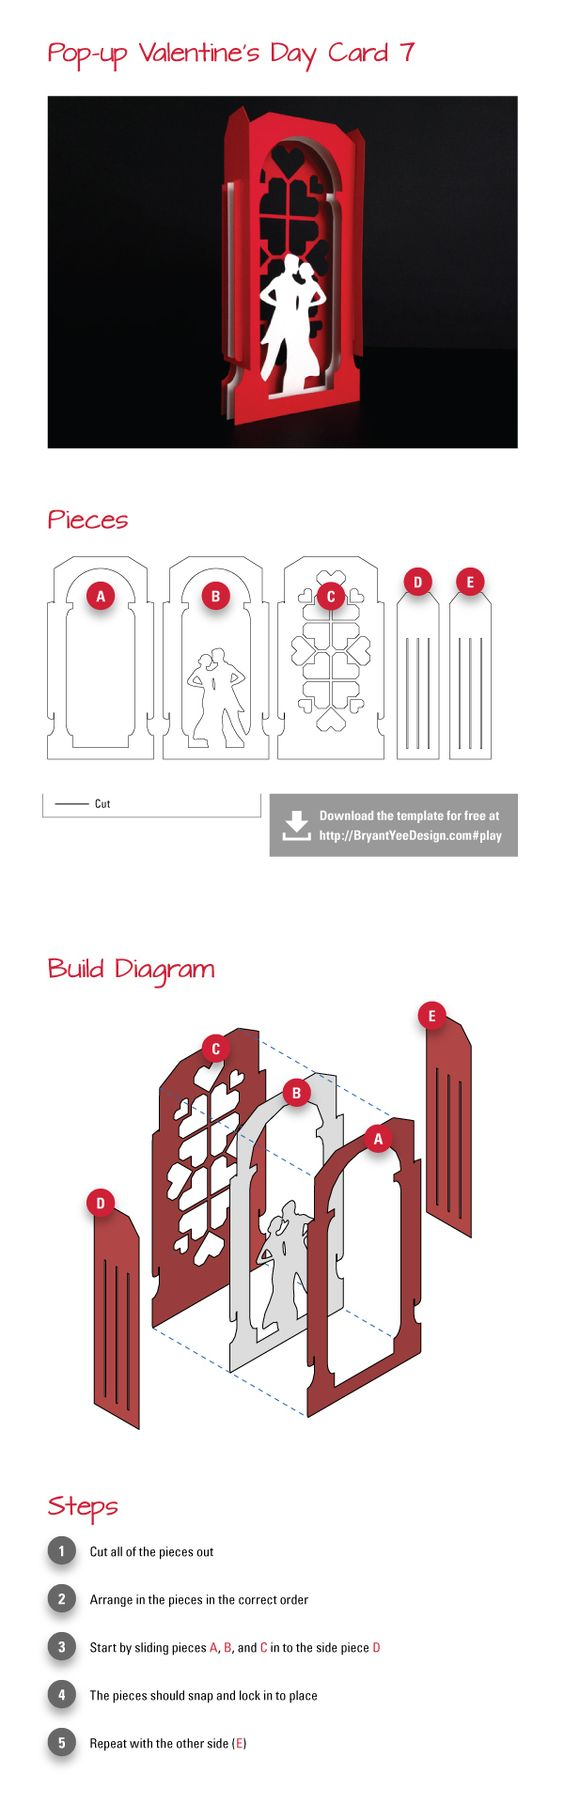 Diy Valentine Day 3d Card Kirigami Pattern Paper Pop Pop Up Cards Paper Engineering